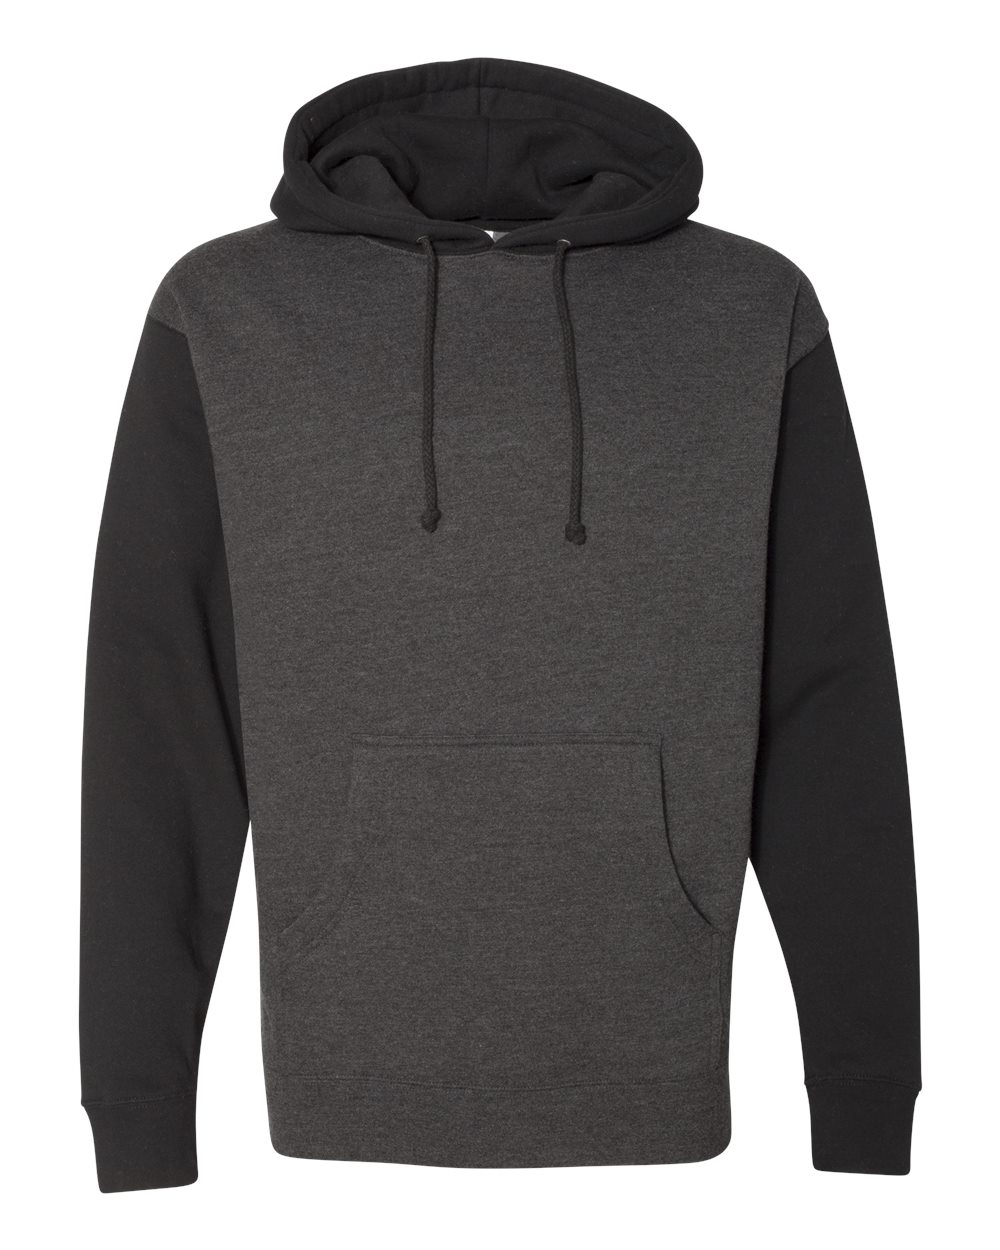 click to view Charcoal Heather/ Black